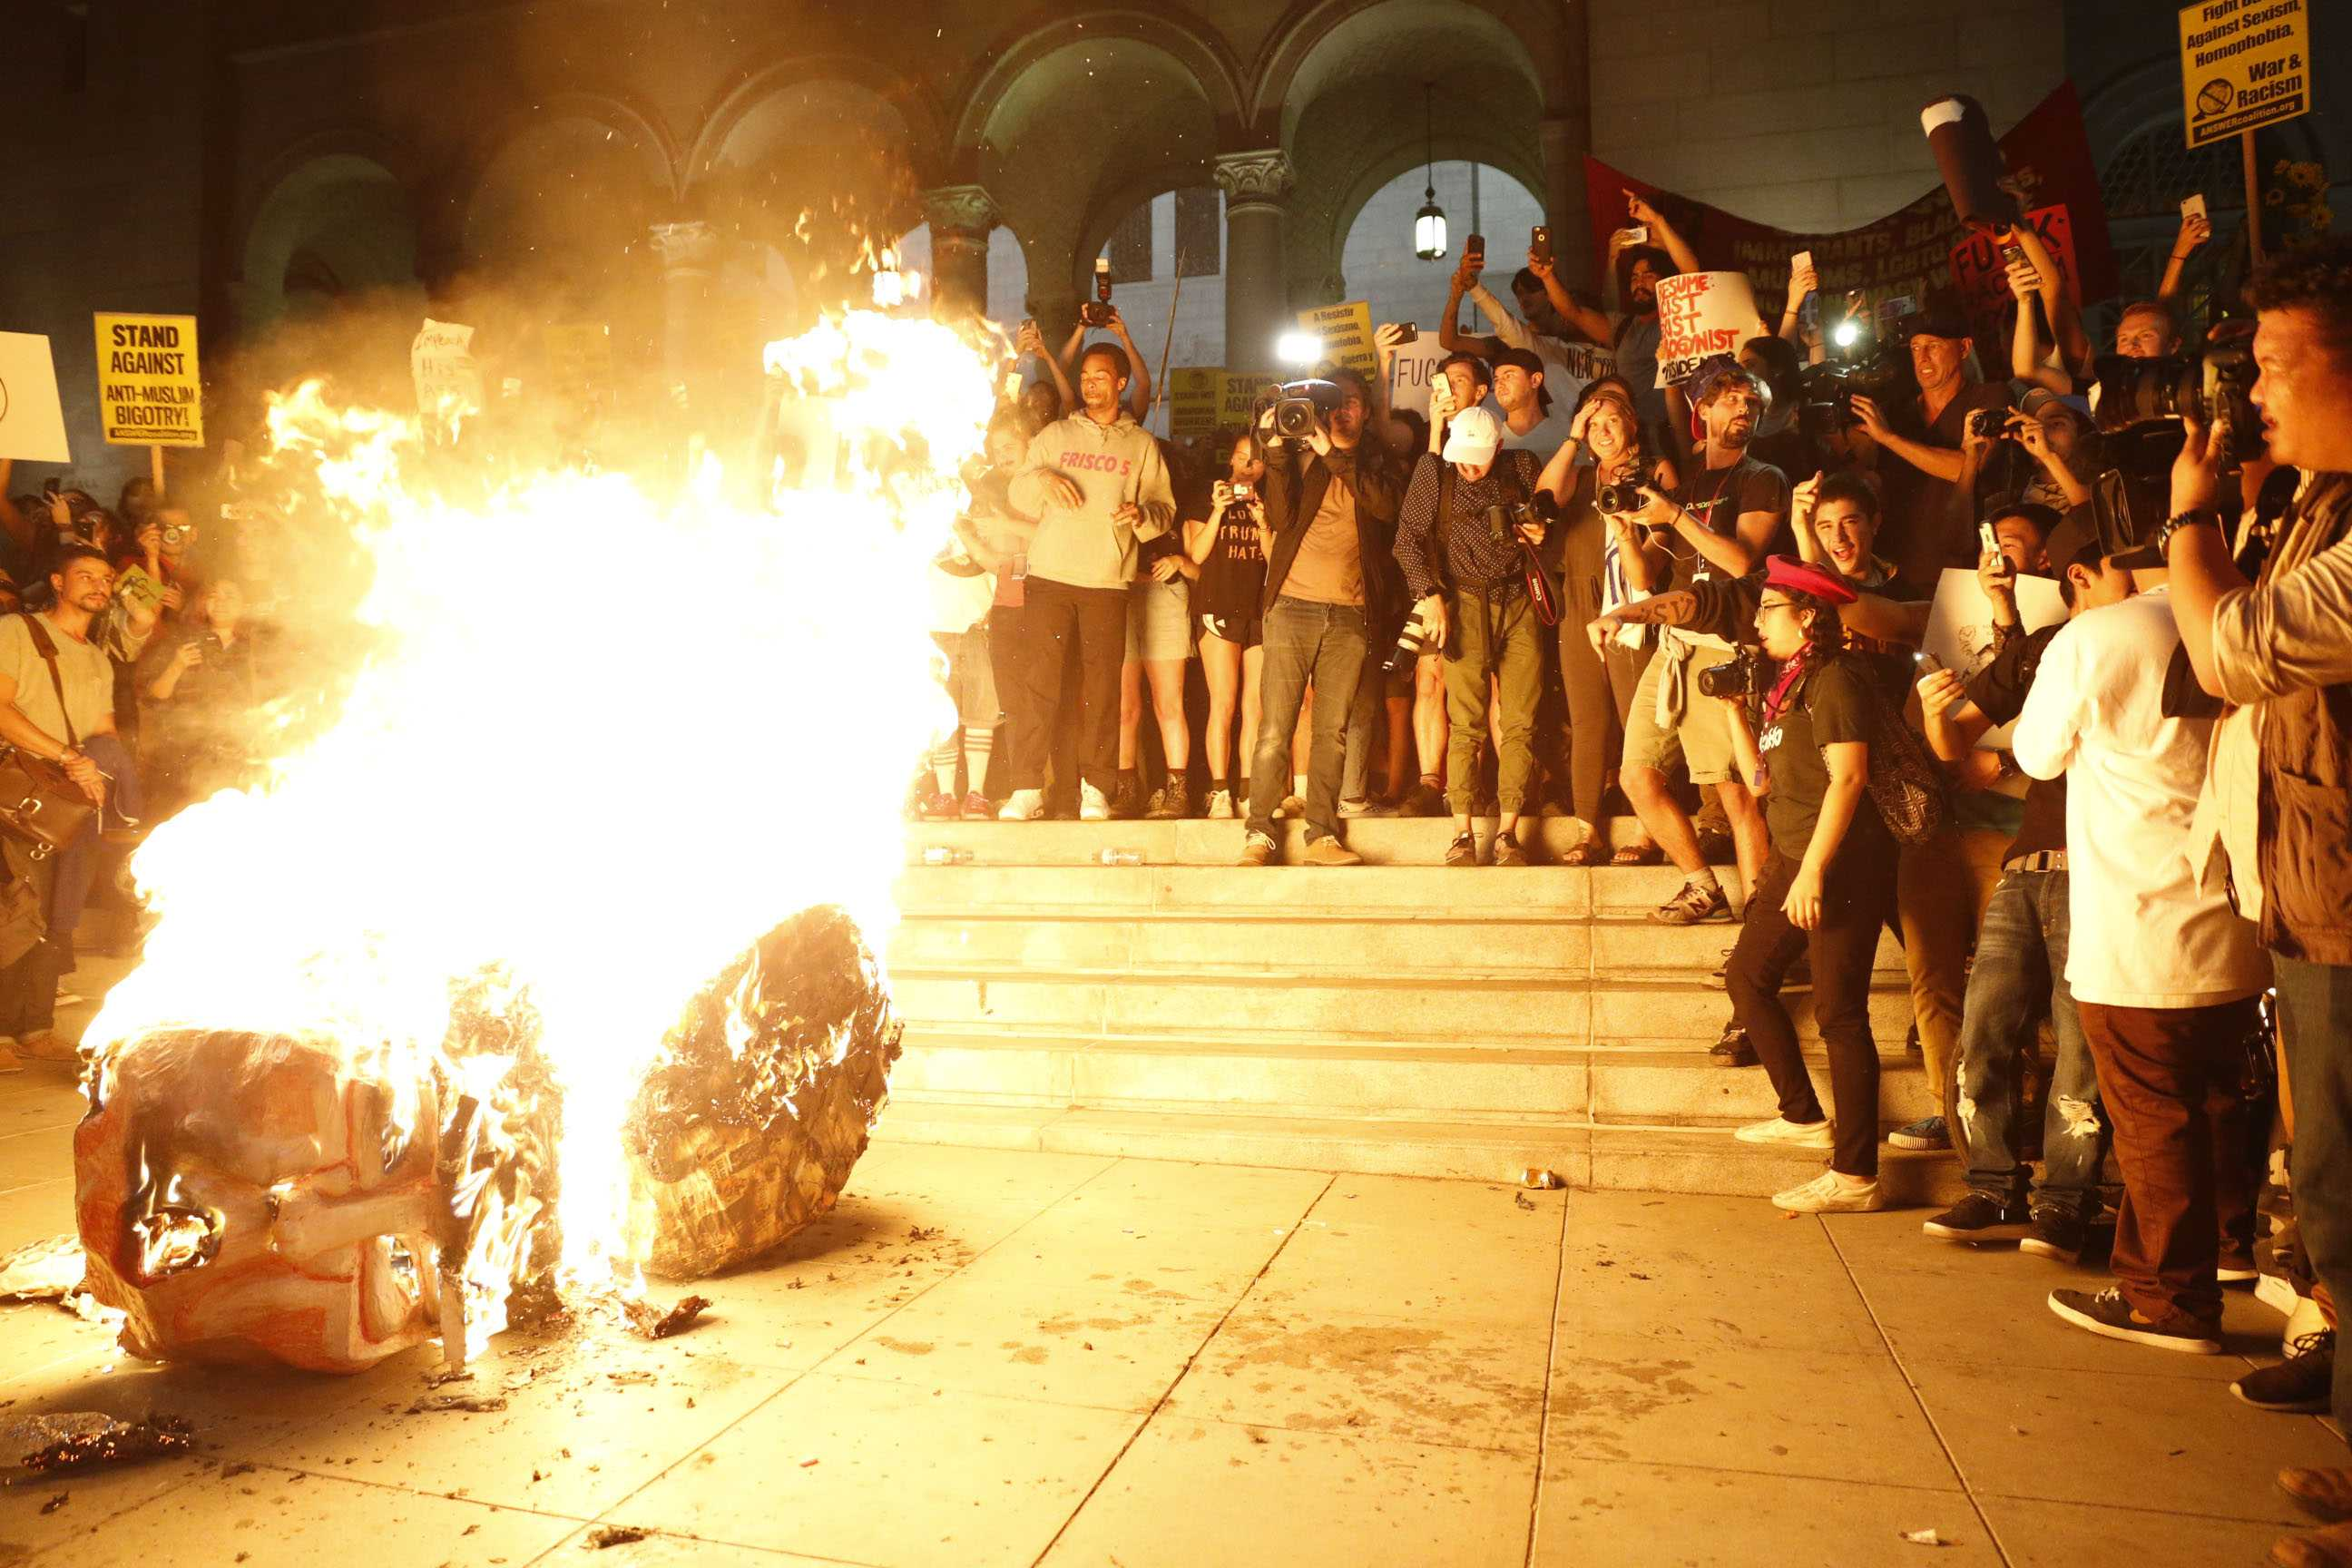 Protesters burn an effigy of Donald Trump outside Los Angeles City Hall on Wednesday, Nov. 9, 2016. (Marcus Yam/Los Angeles Times/TNS)